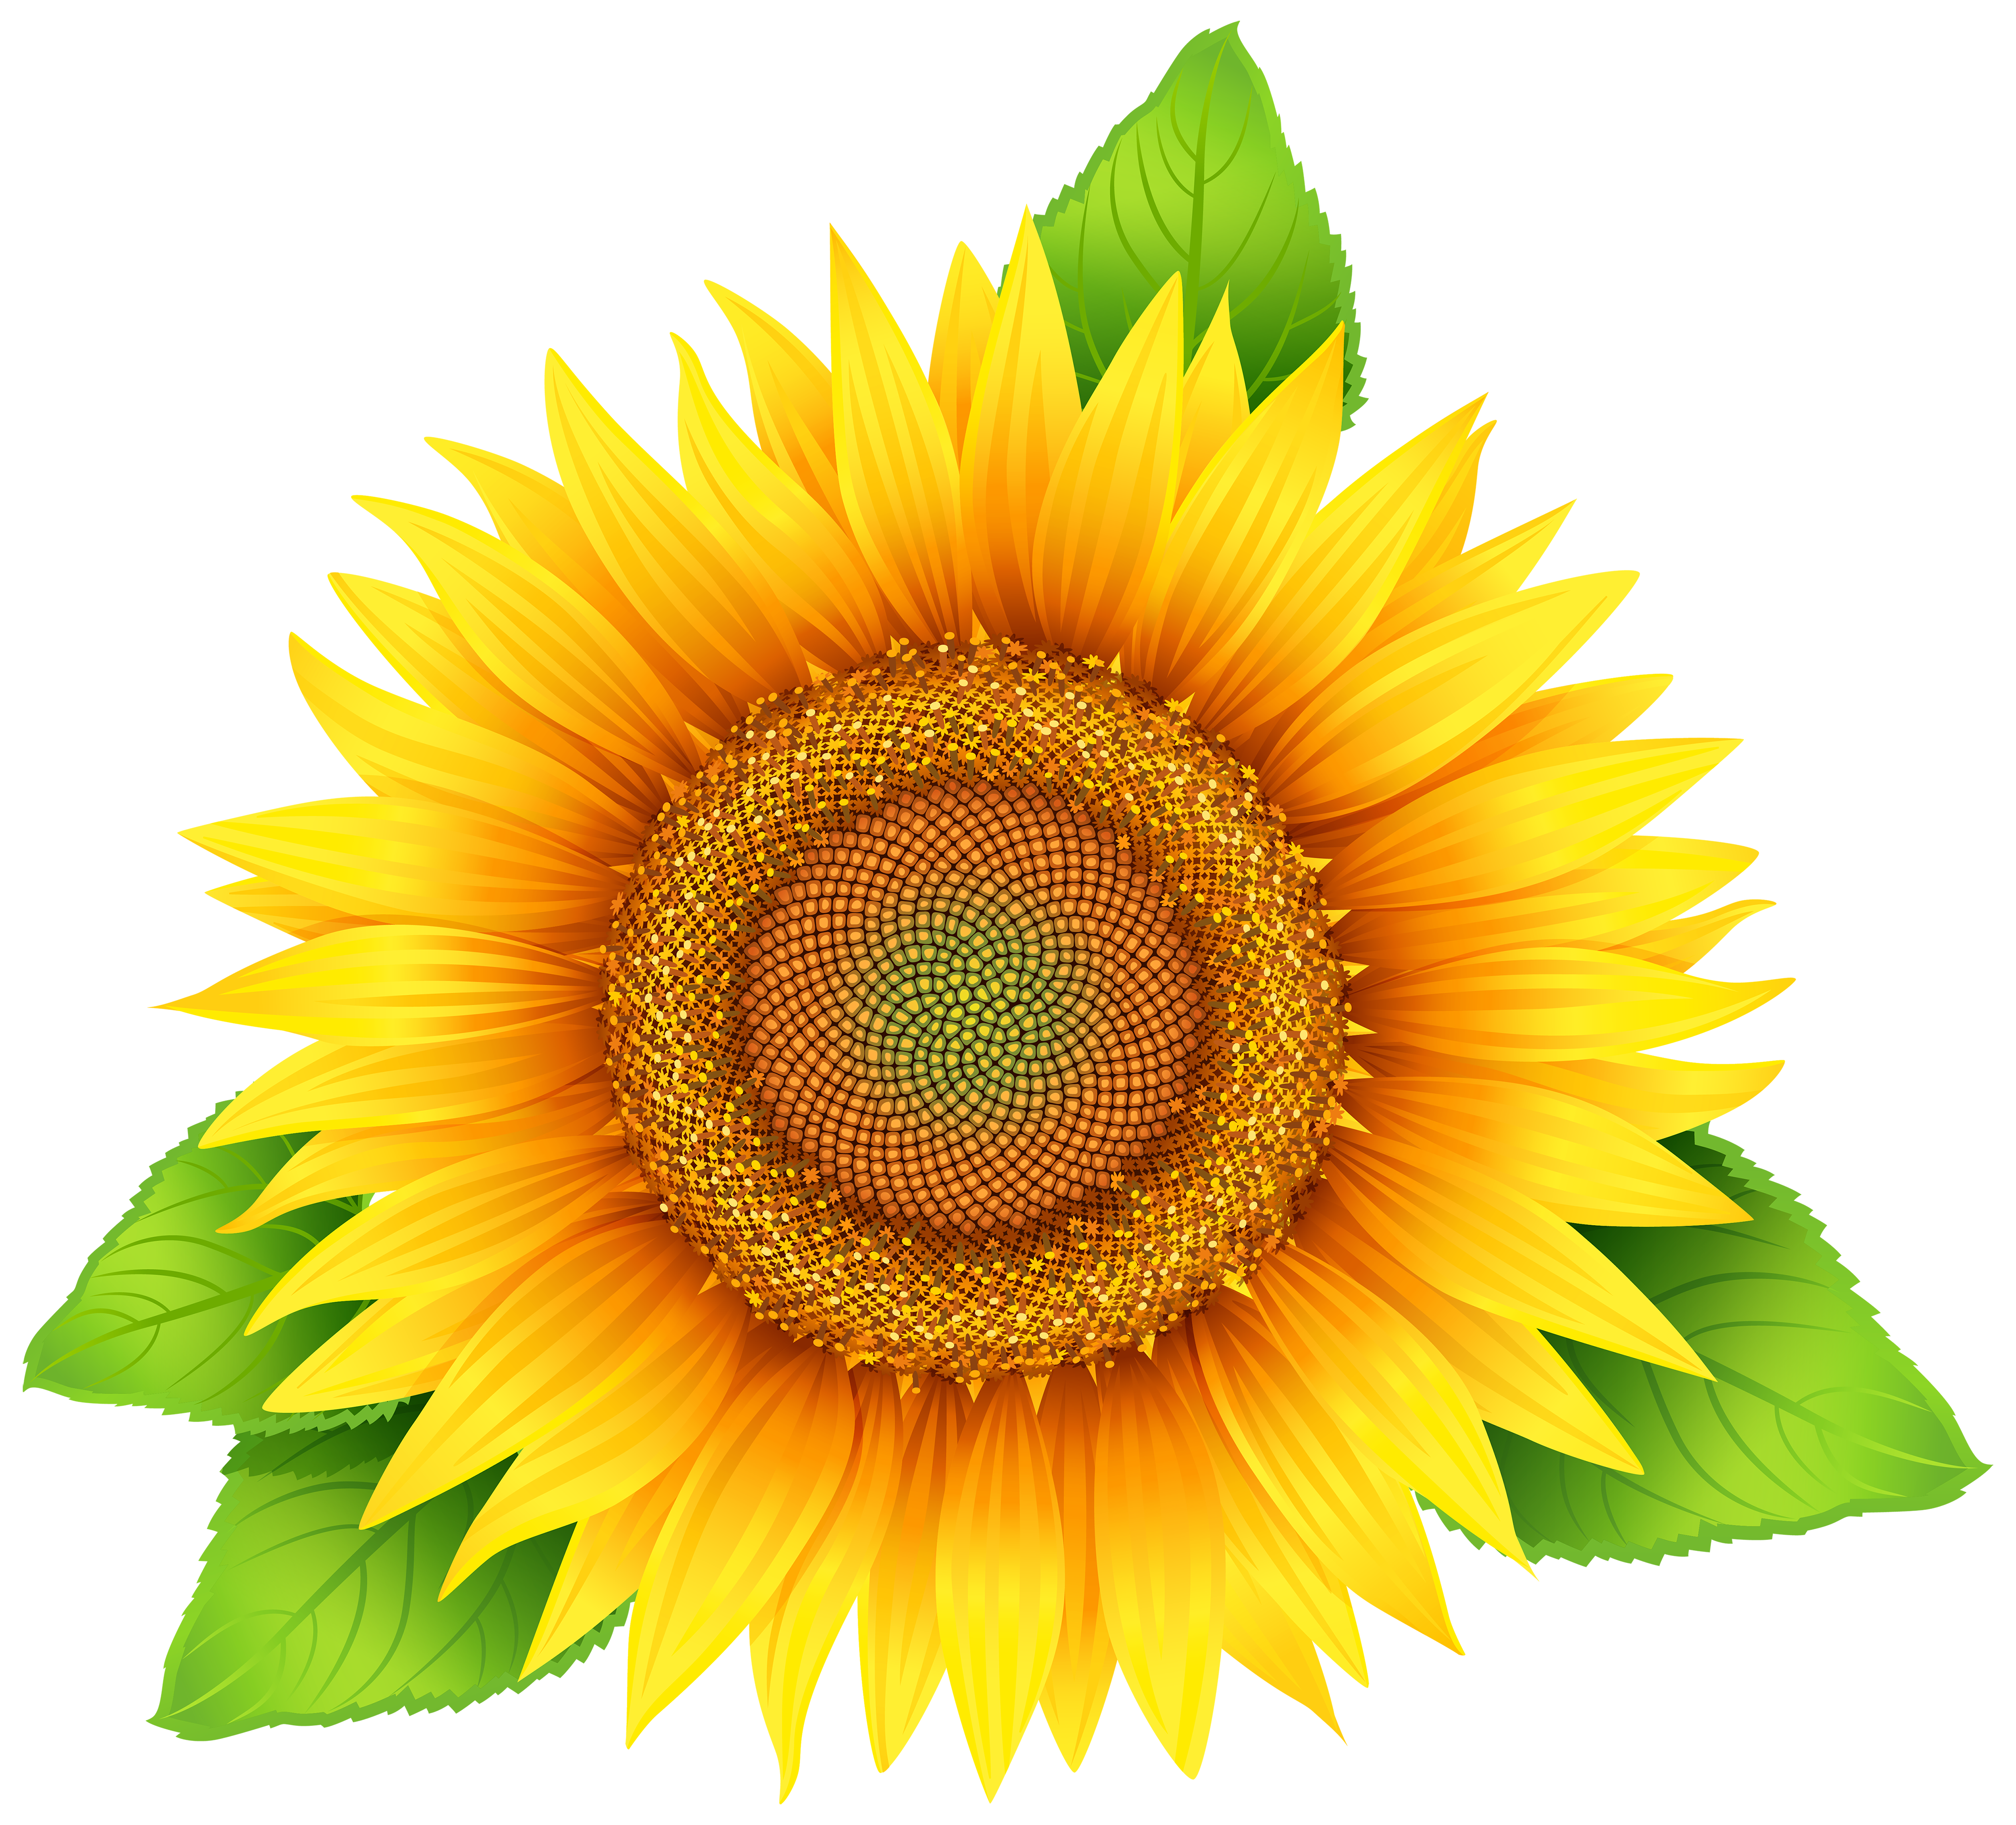 Sunflower clipart image gallery. Sun flower png